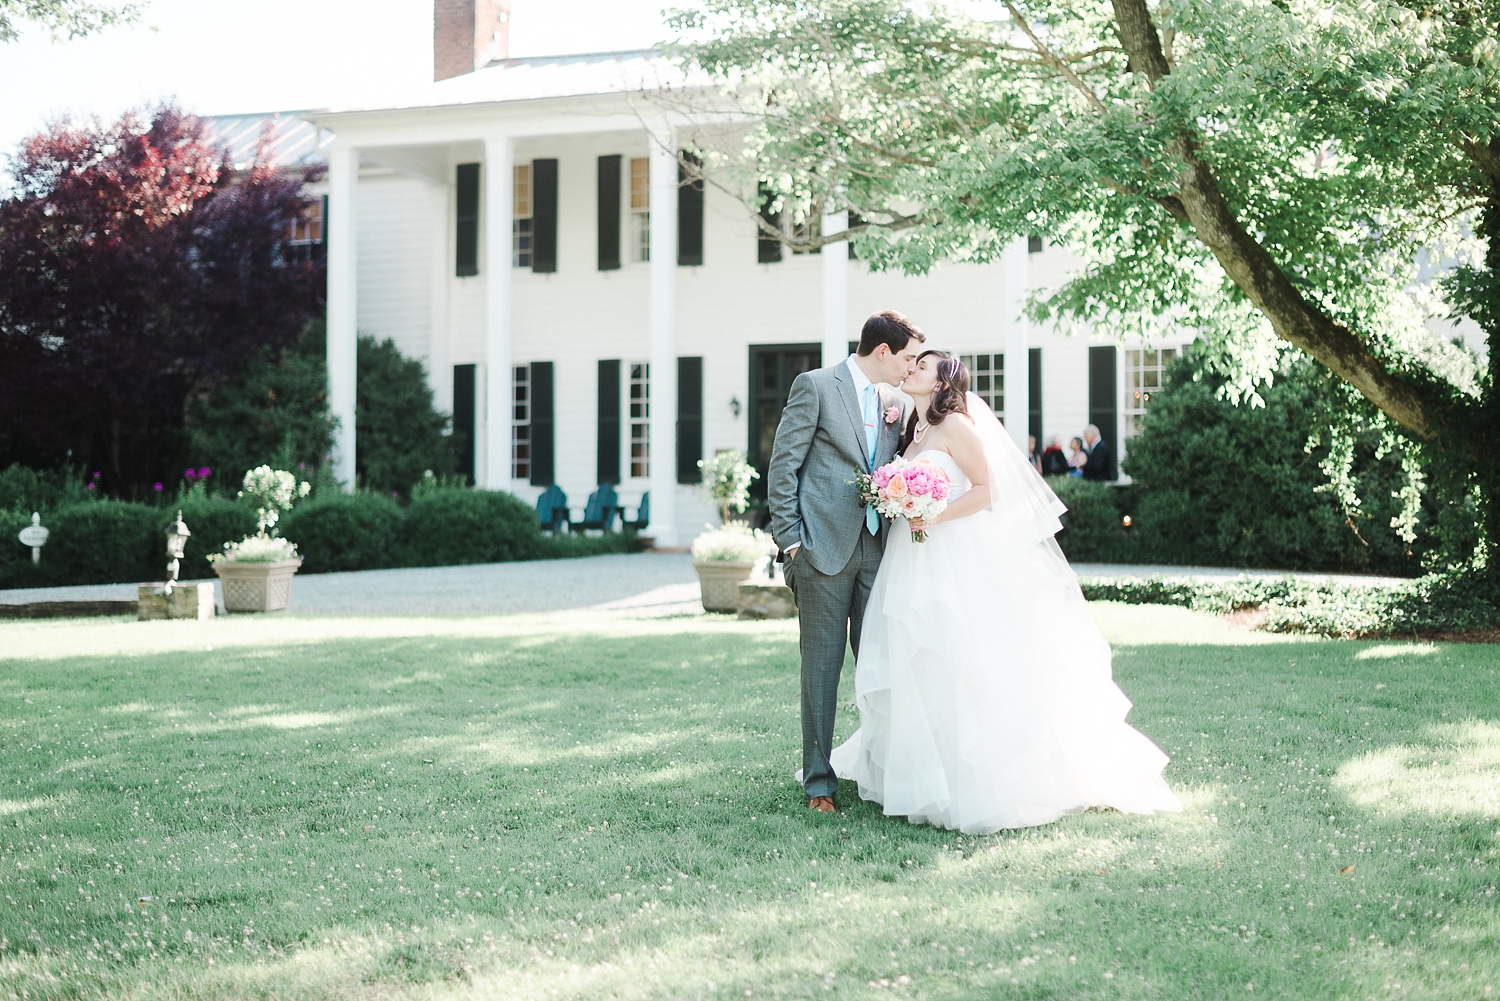 clifton_inn_charlottesville_wedding_0113.jpg